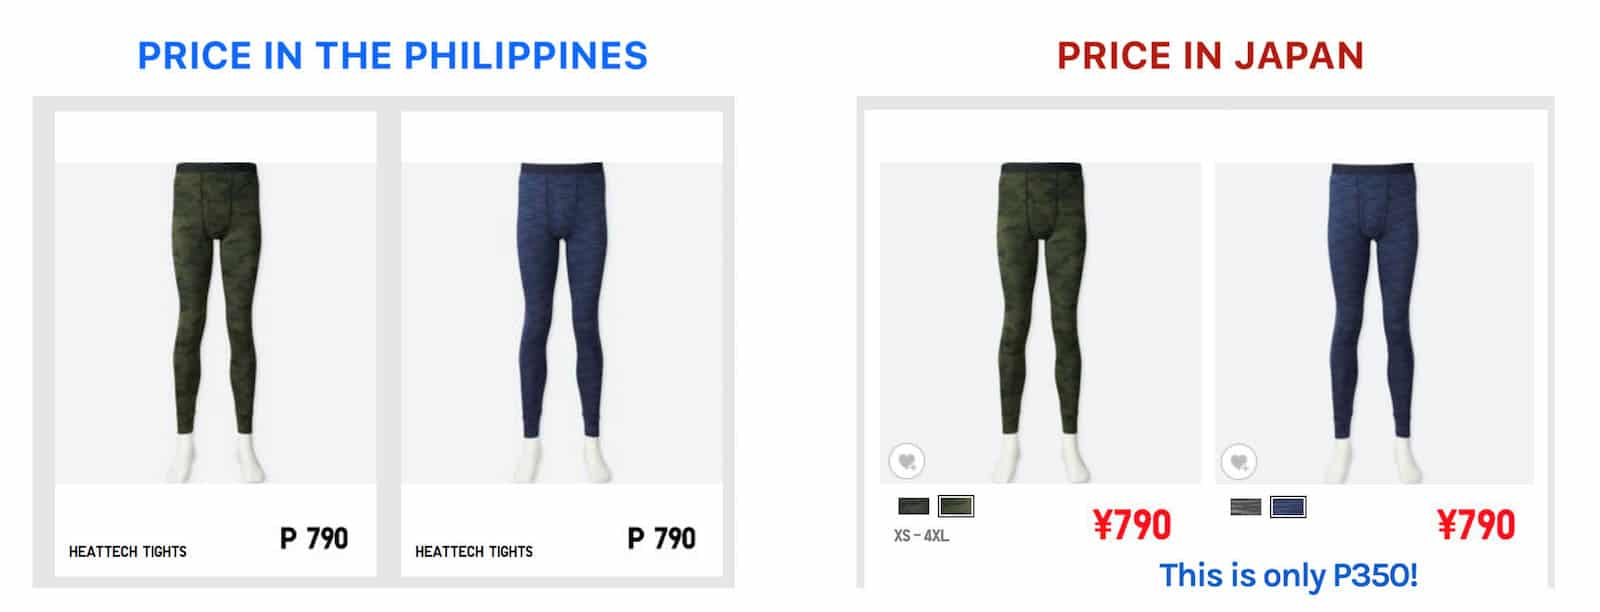 cb2a5bc12 For example, the bottom tights or leggings that cost P790 at UNIQLO in  Manila, they cost only 790 YEN in Japan. ¥790 is equal to only P350.